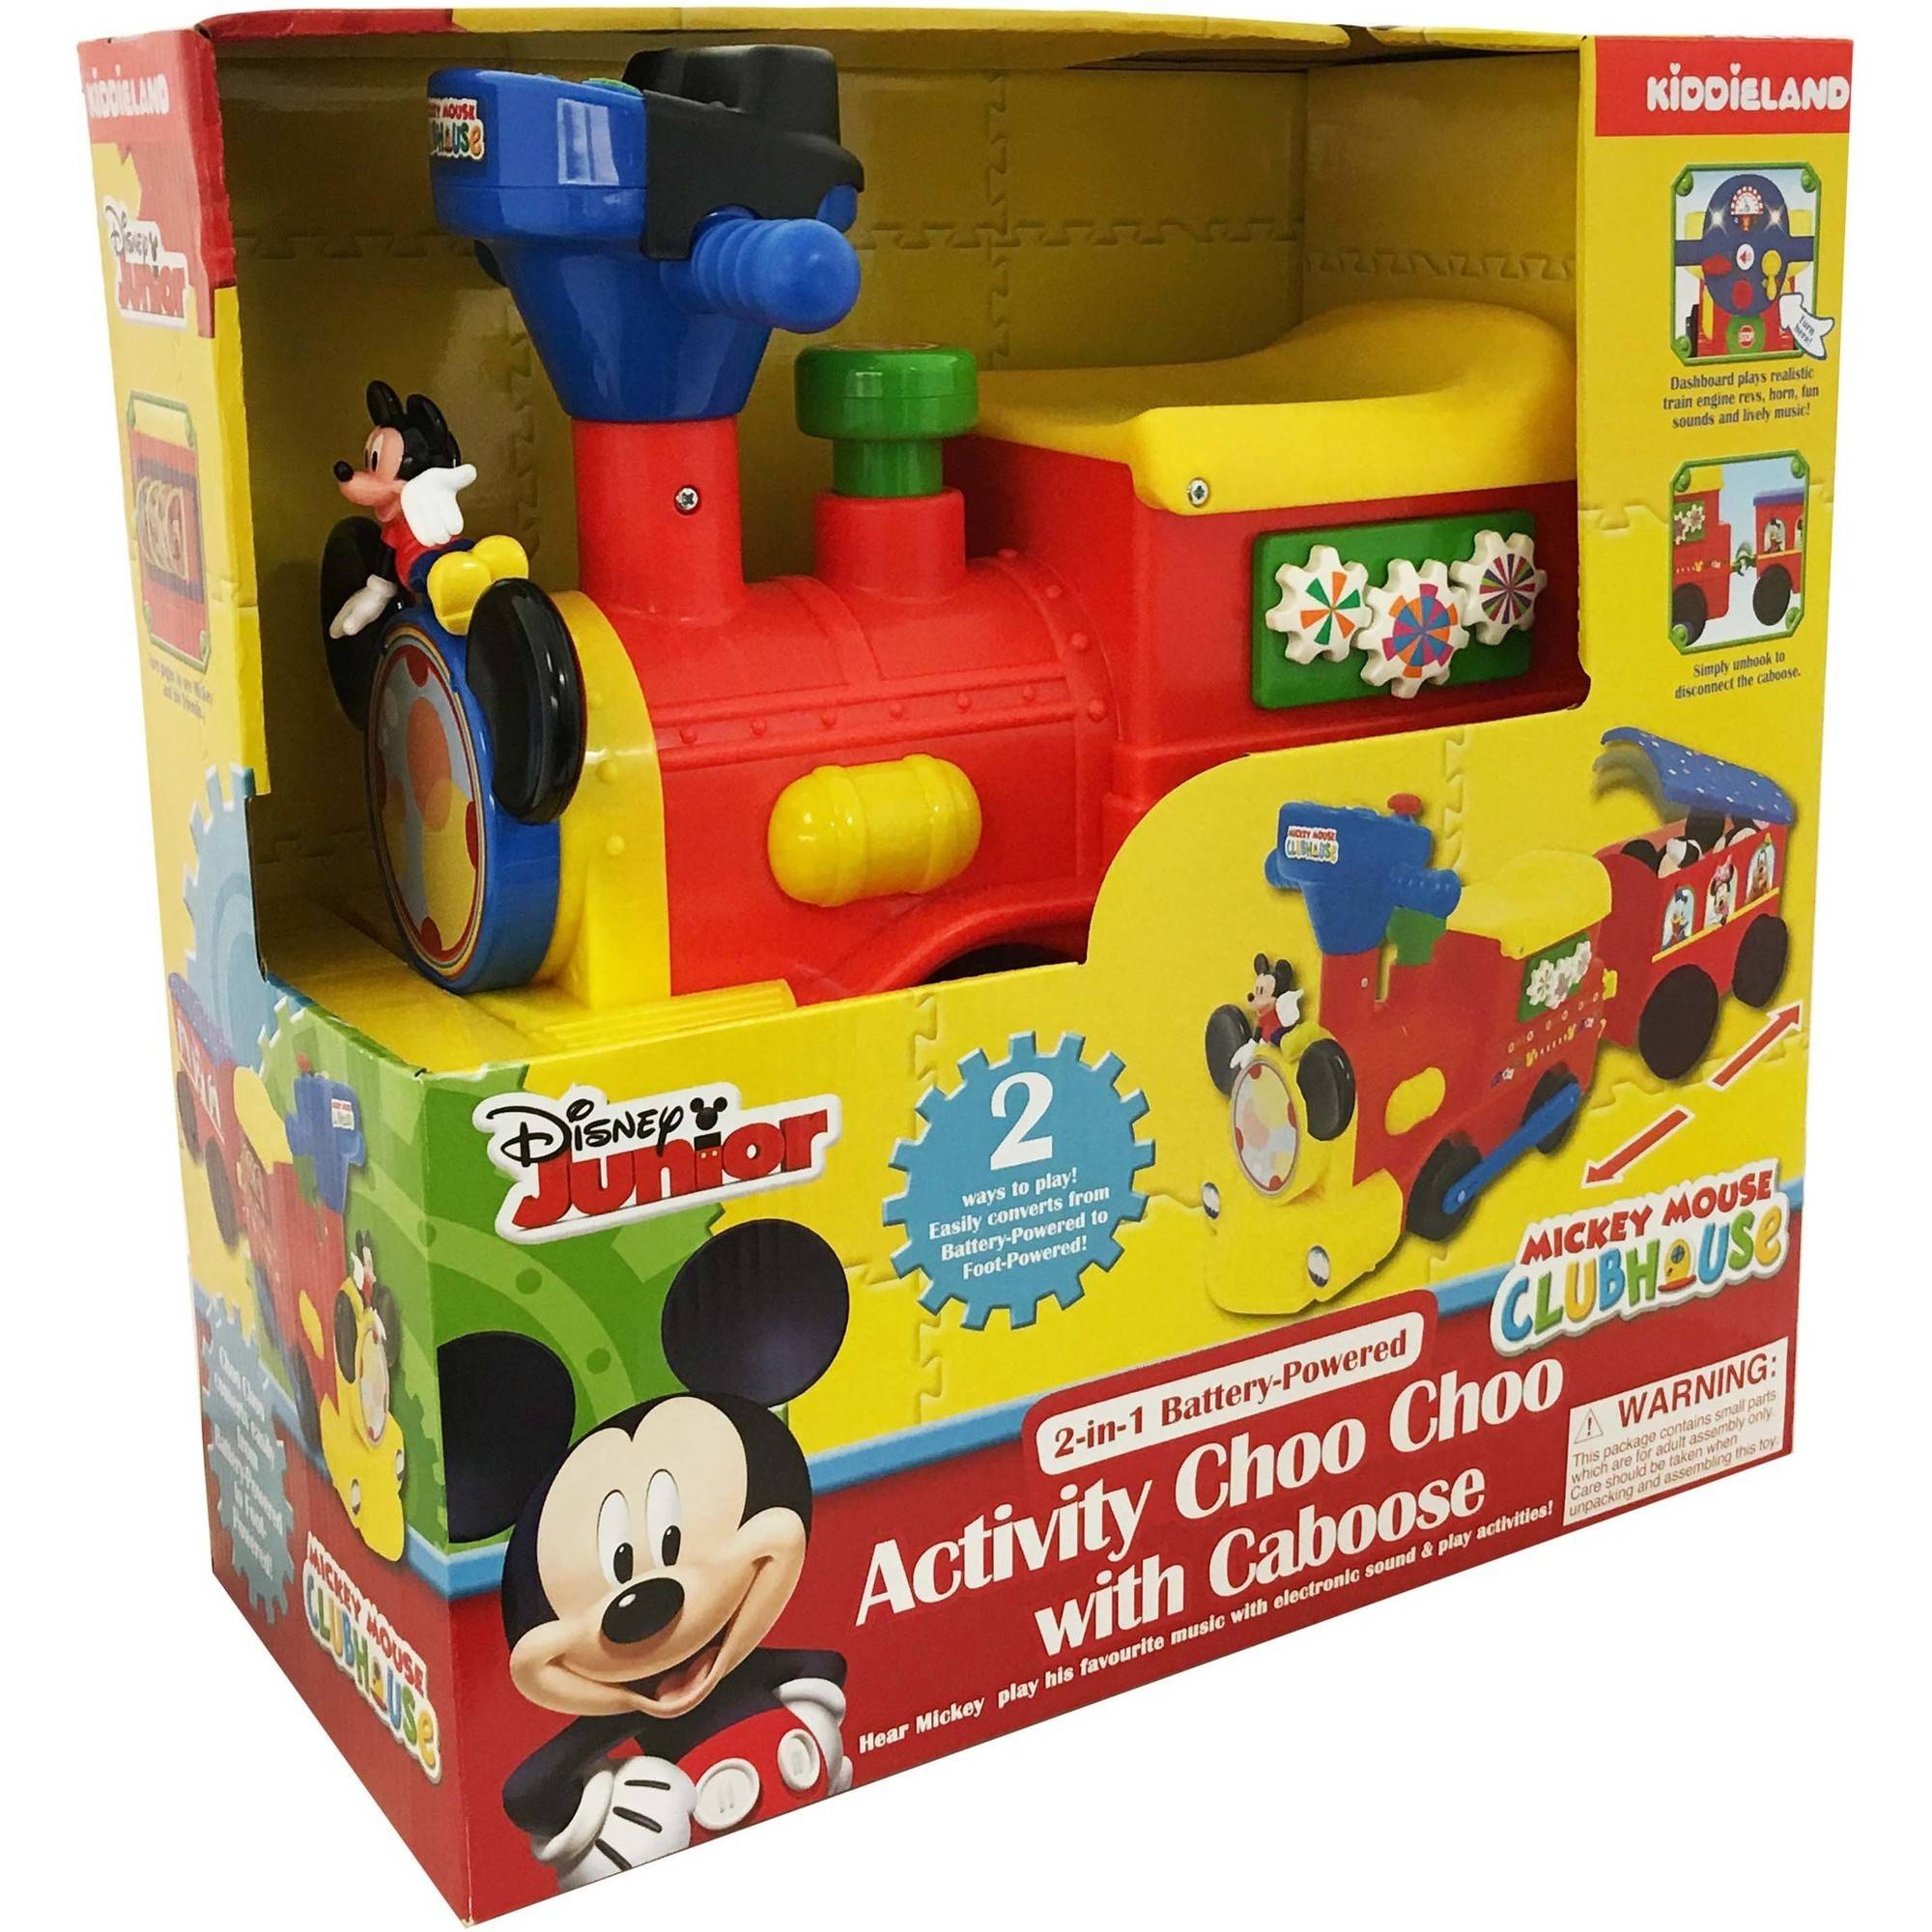 Mickey mouse toys for one year old toys model ideas for Disney mickey mouse motorized choo choo train with tracks